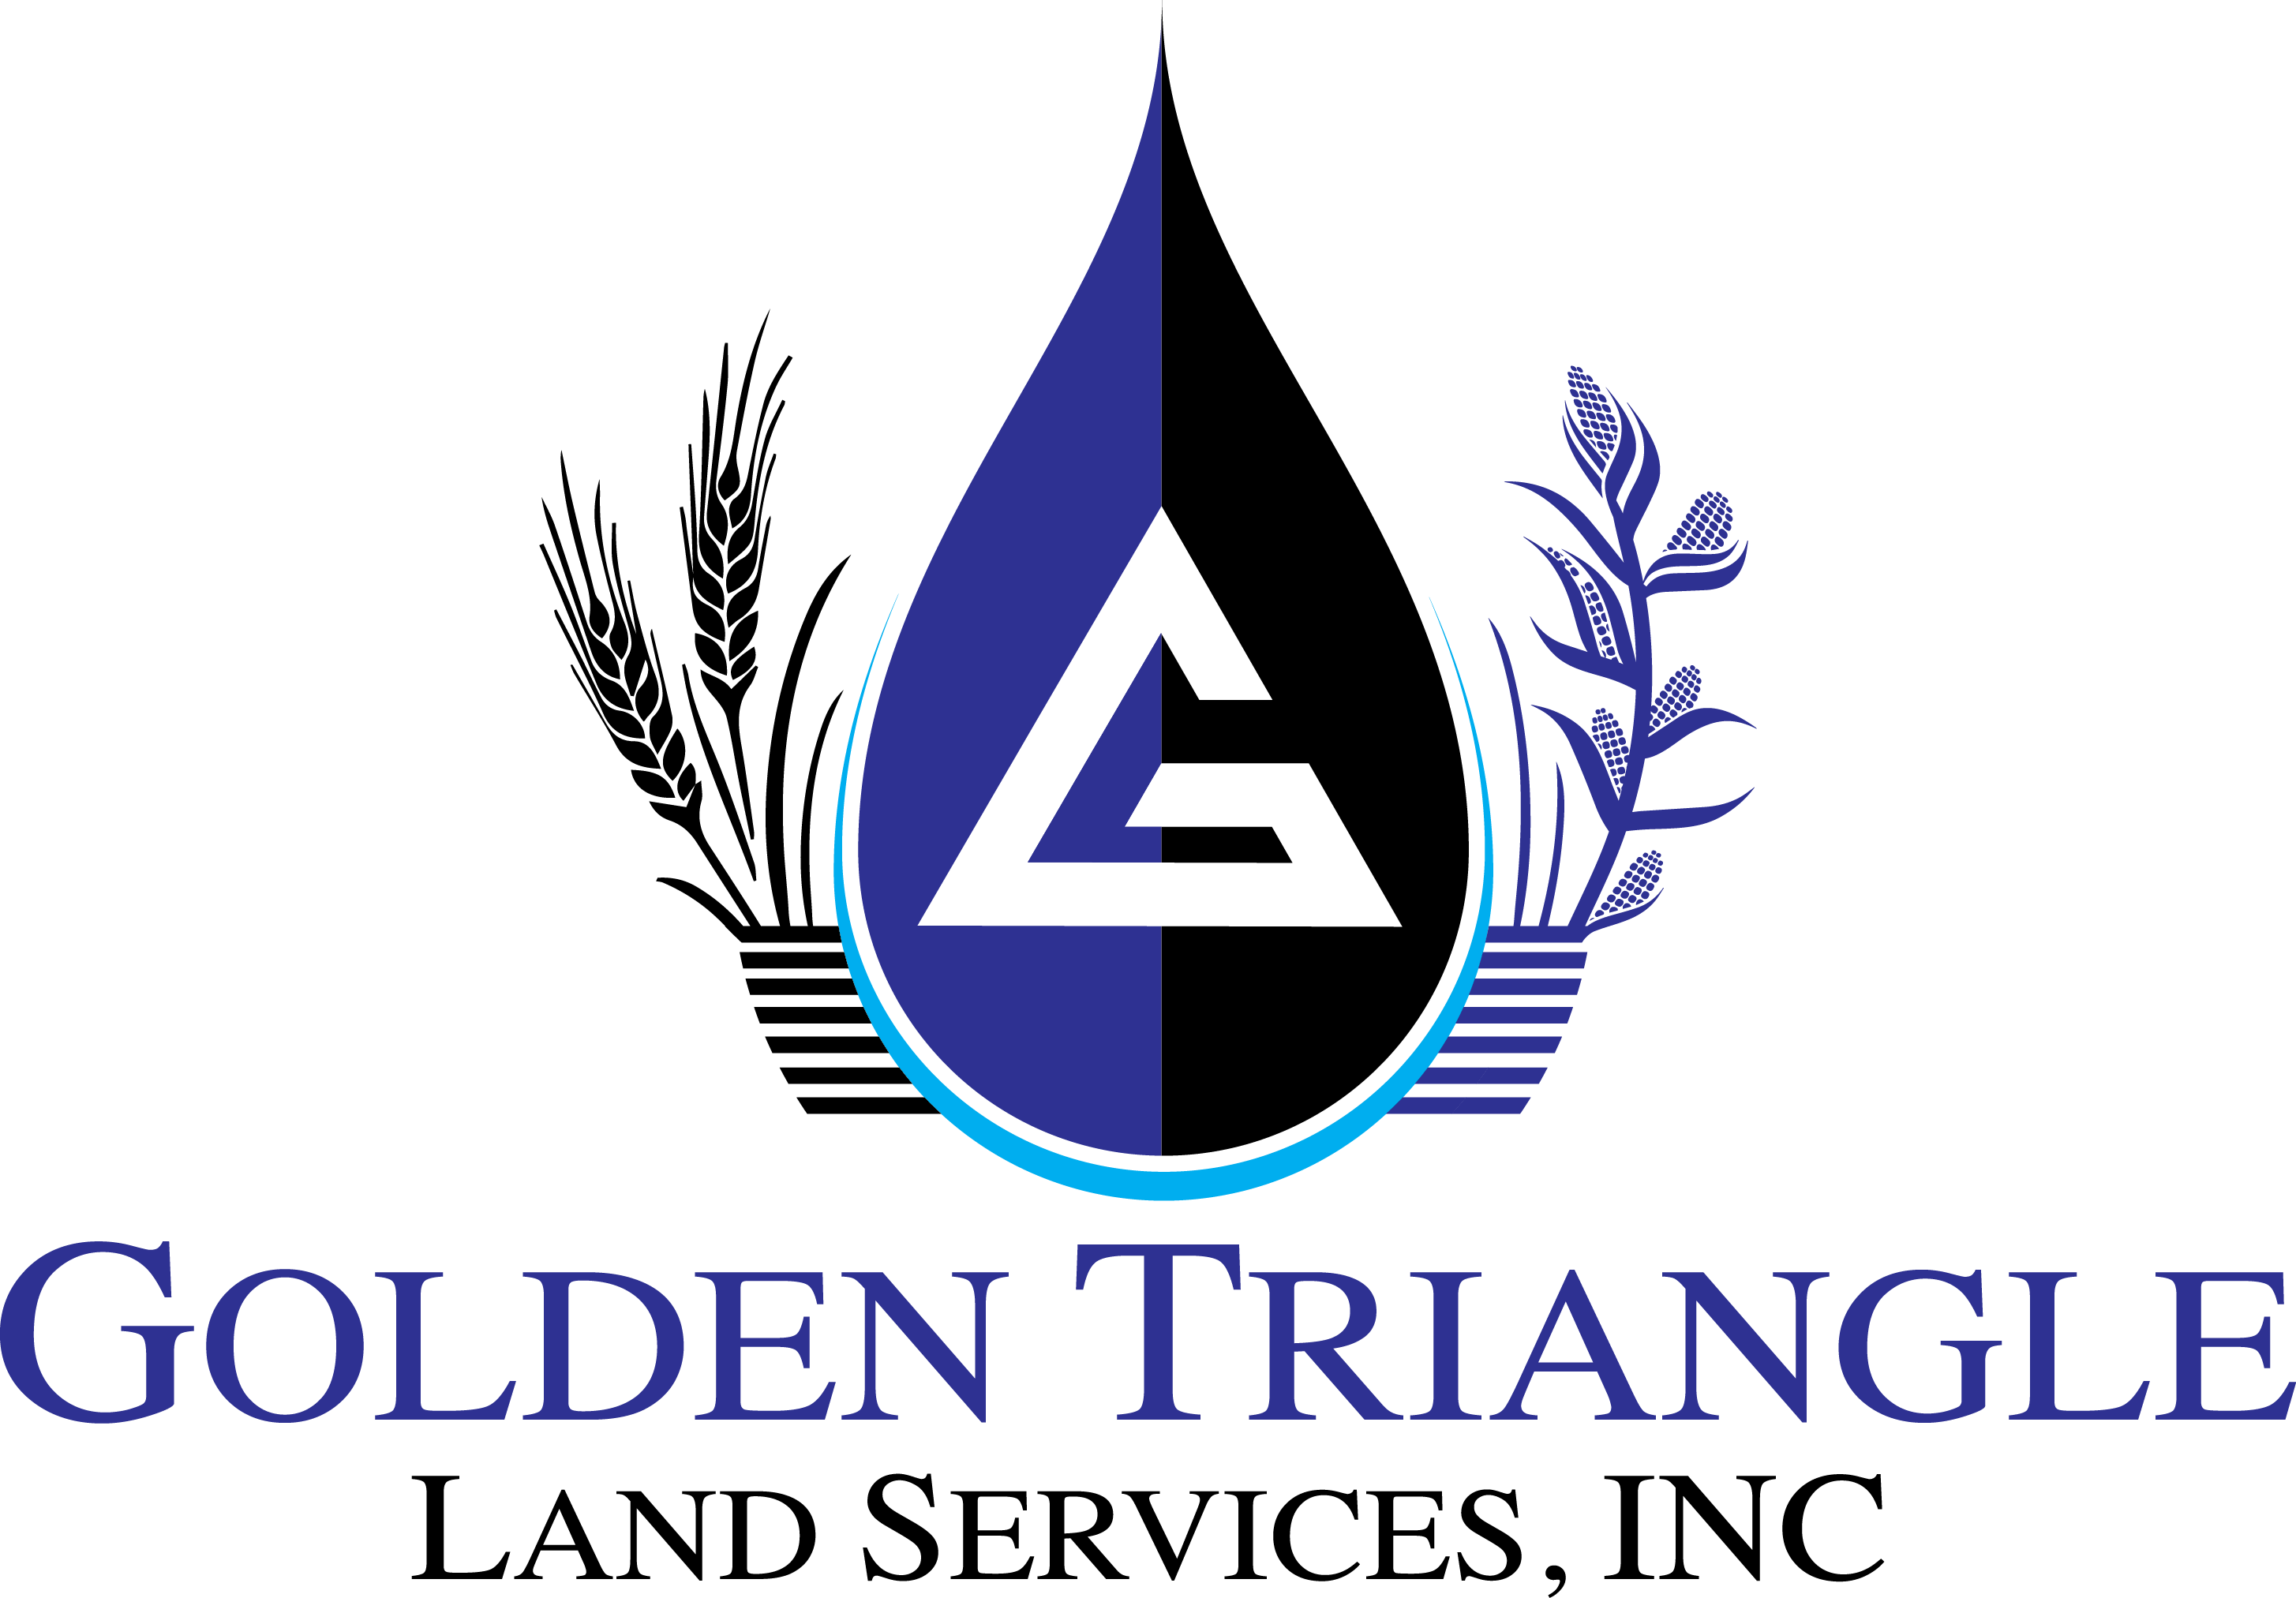 Golden Triangle Land Services